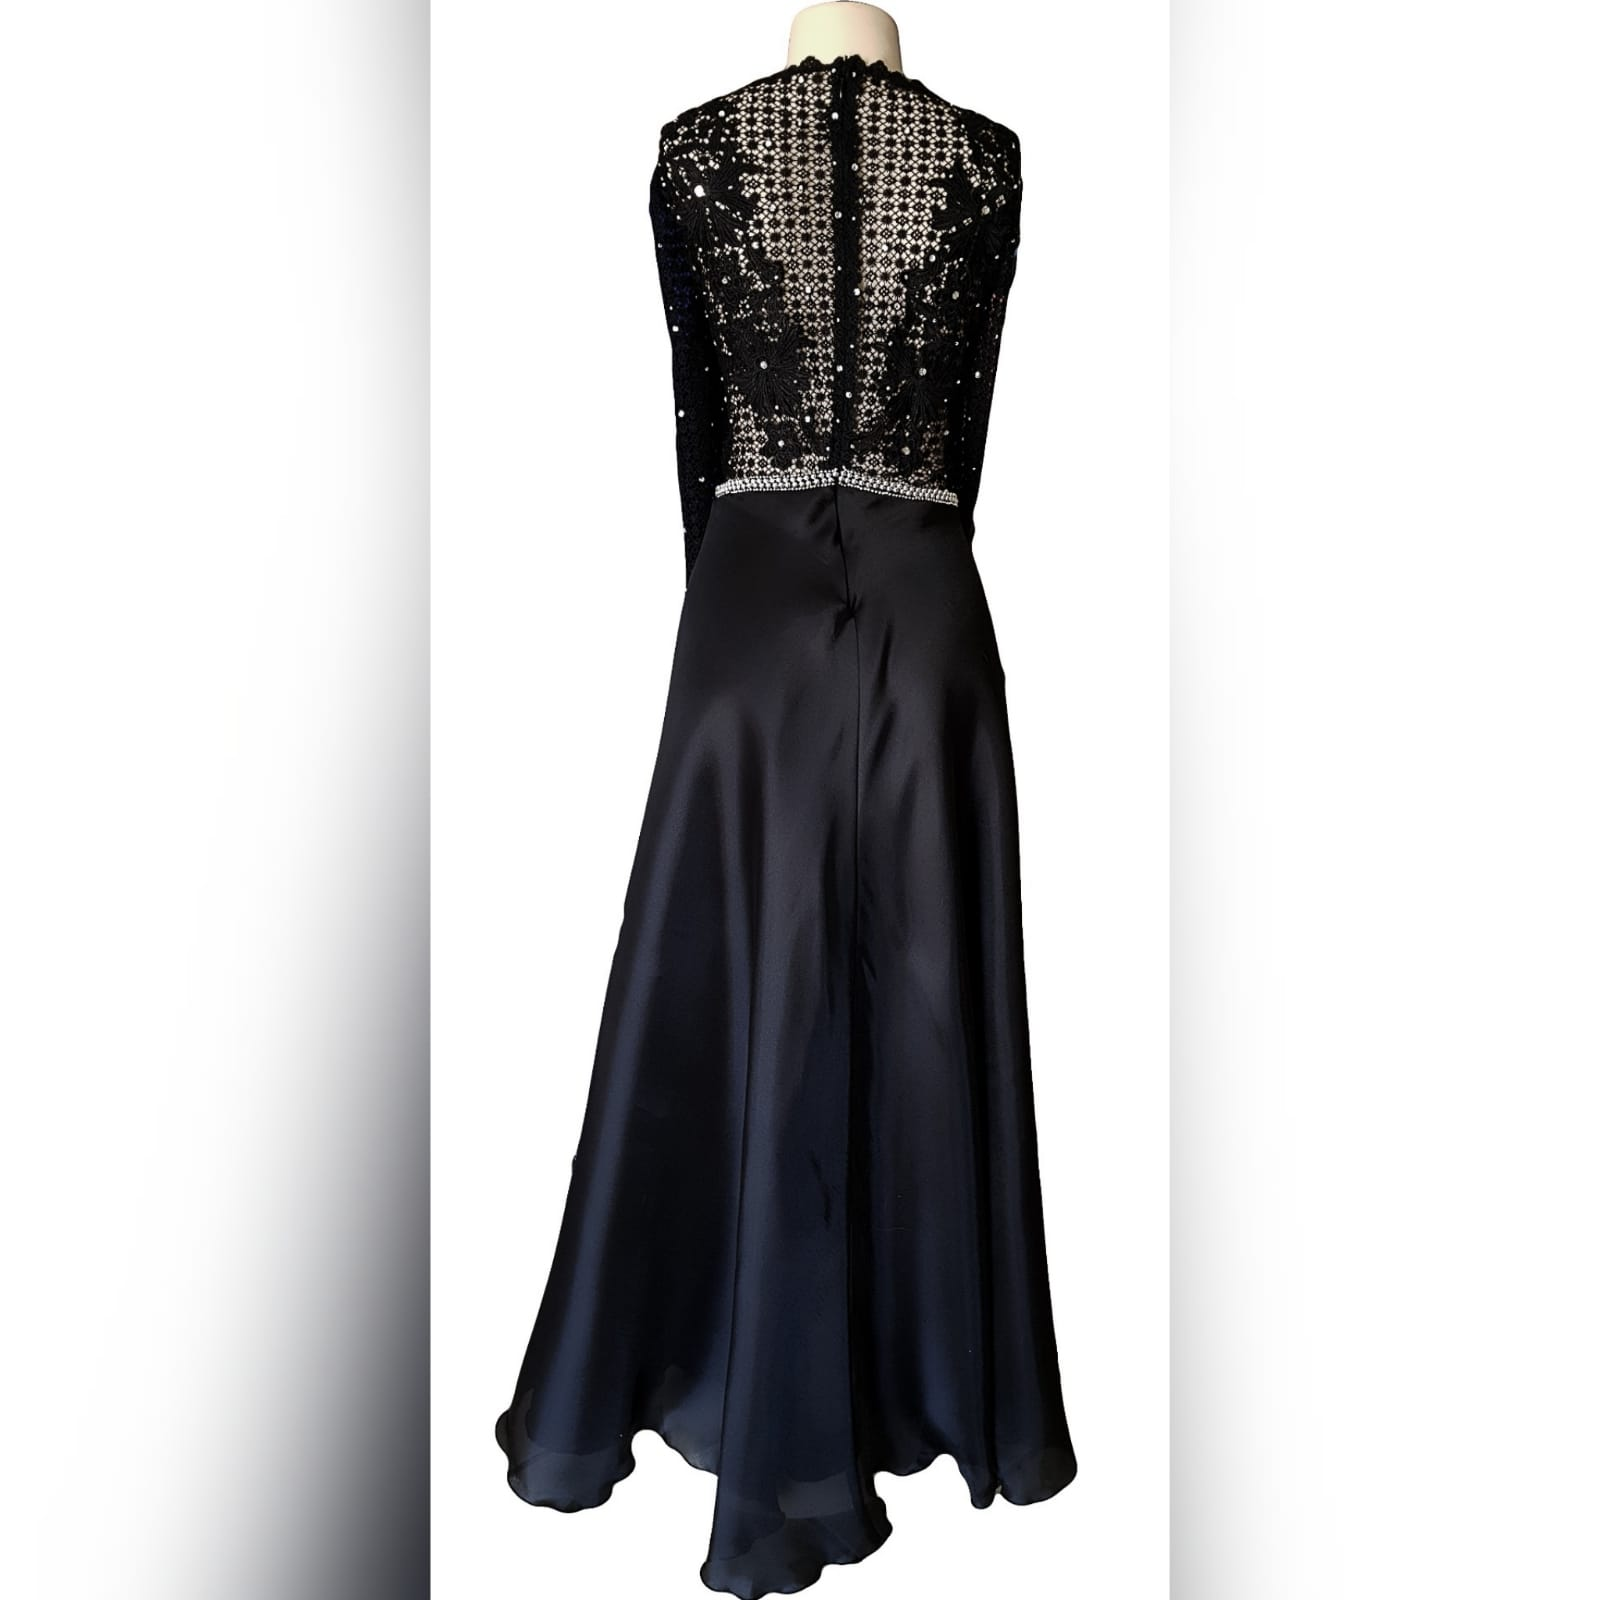 Black prom dress with a lace bodice 9 an elegant design created for a prom night. Black prom dress with a lace bodice with a slight sheer look detailed with silver beads and waist belt. Round neckline and long sleeves bottom flowy in a bridal organza